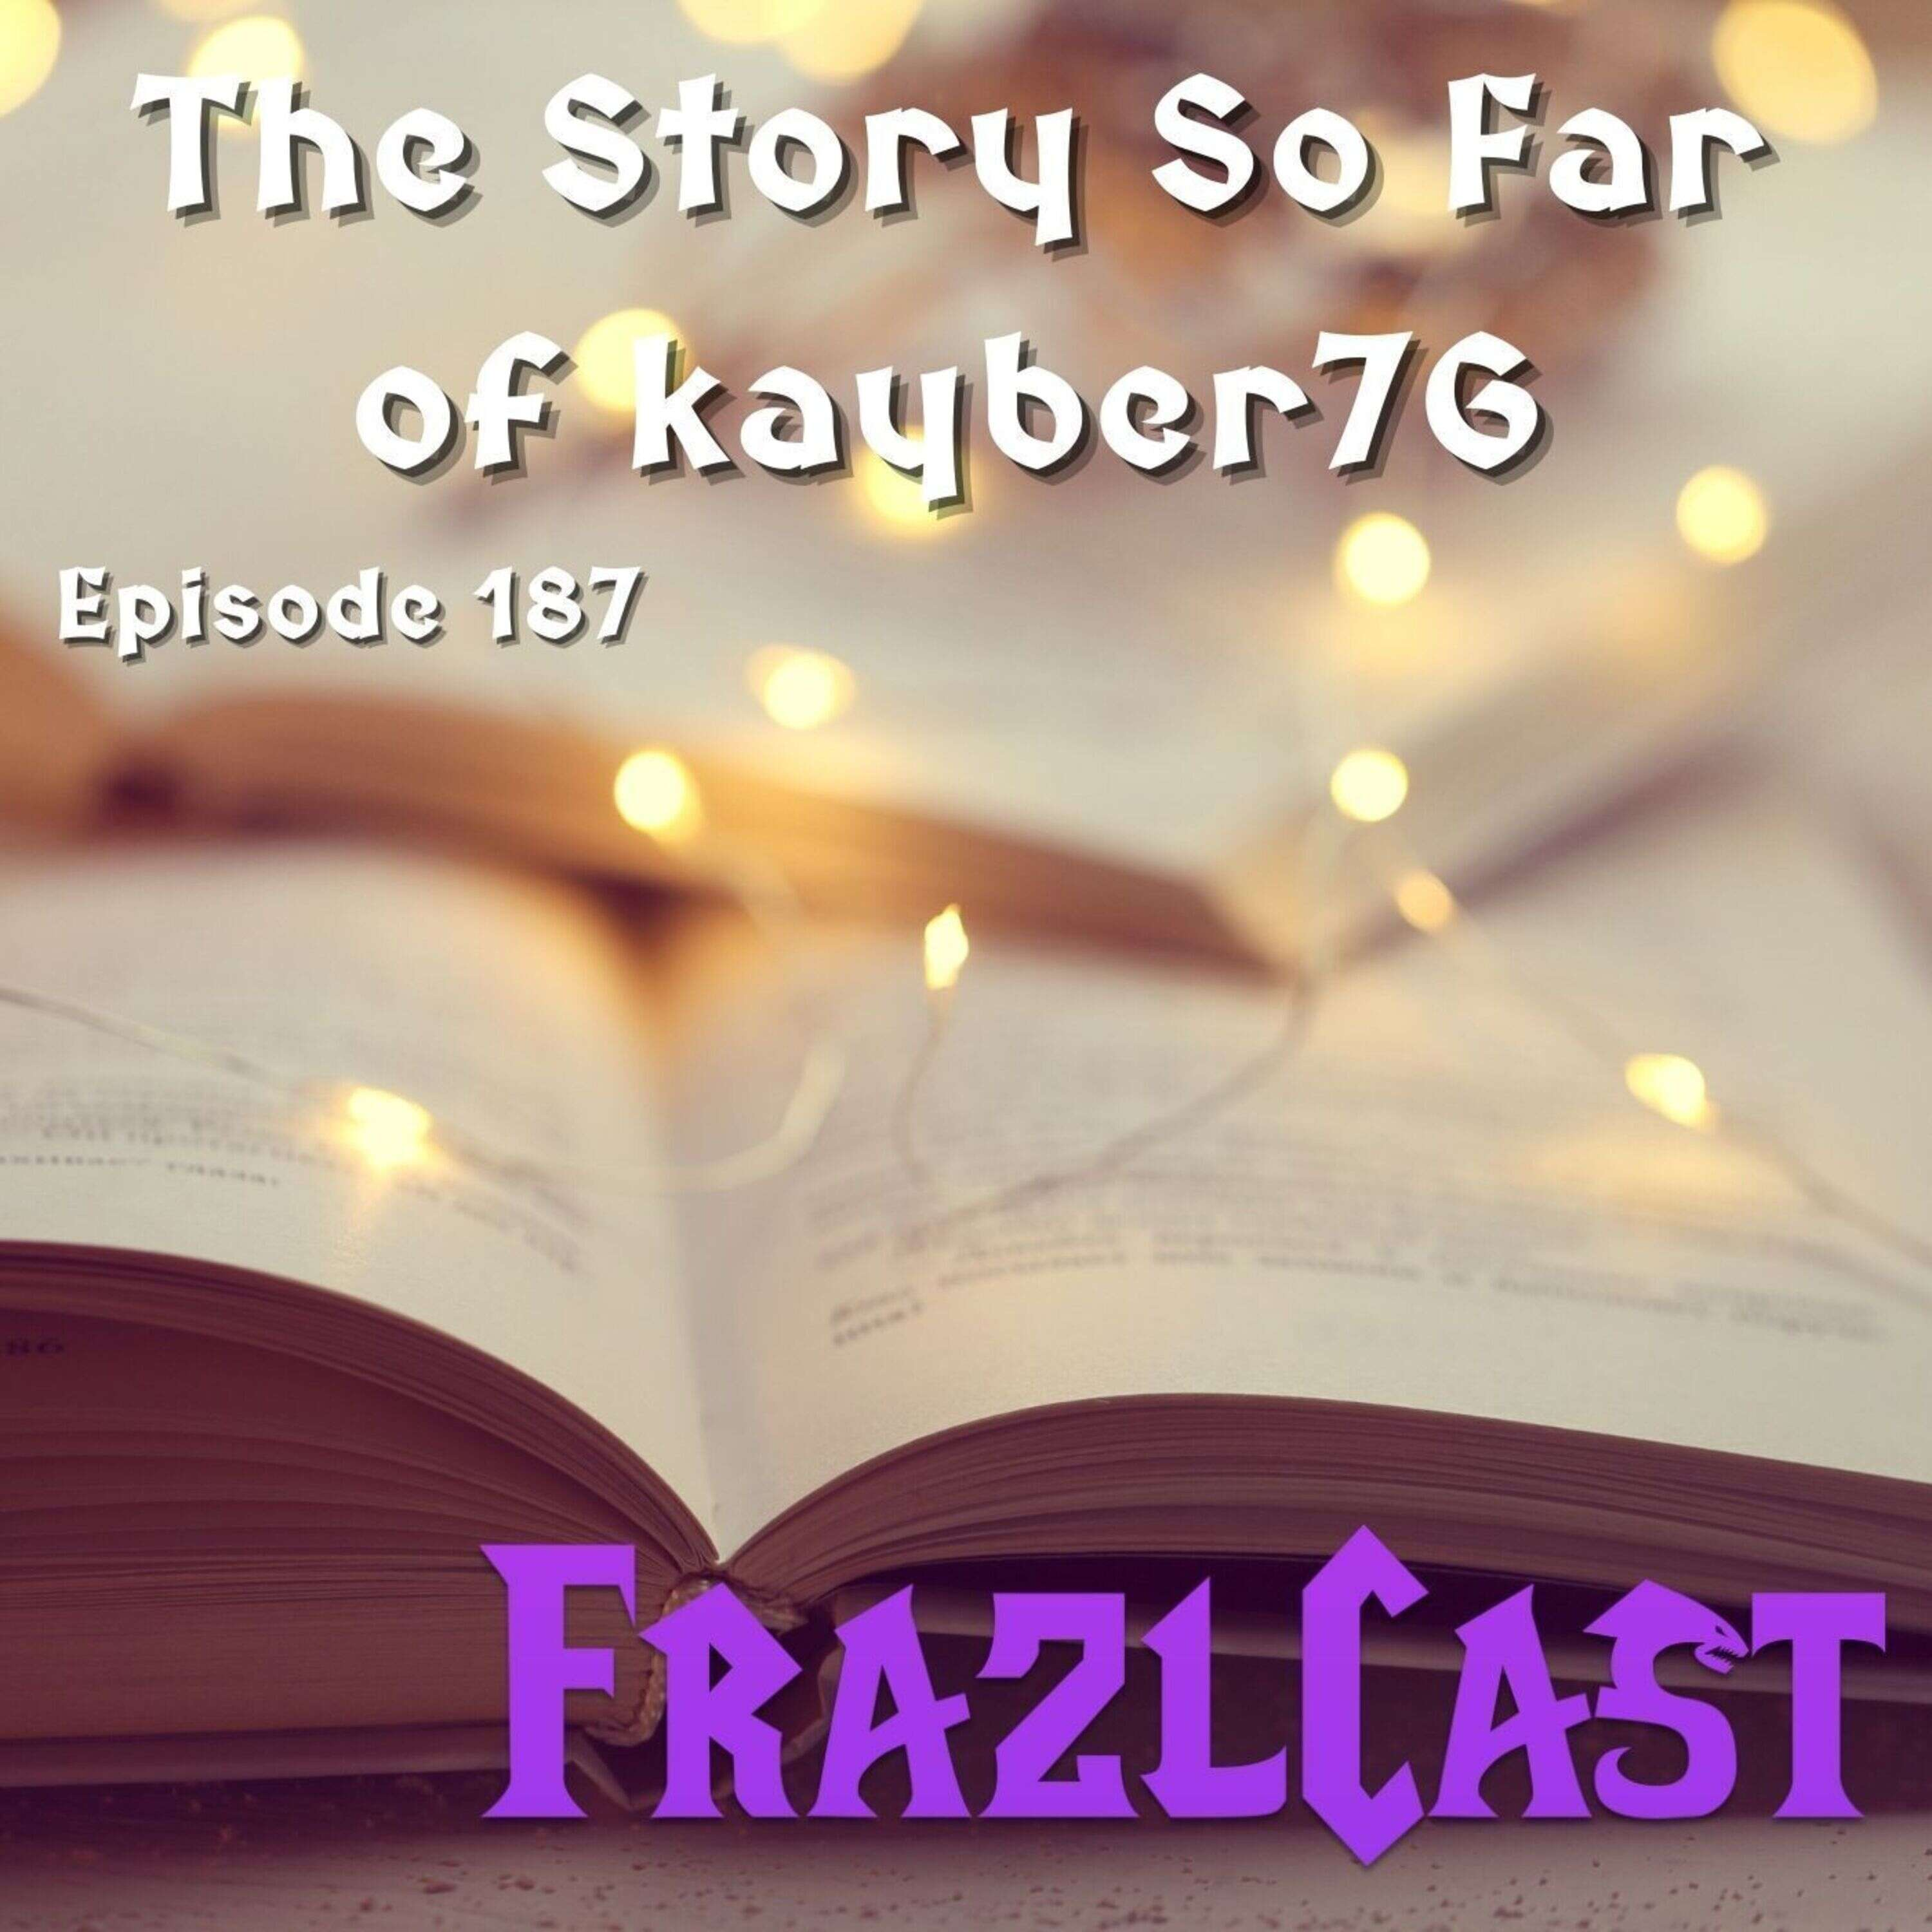 The Story So Far of kayber76